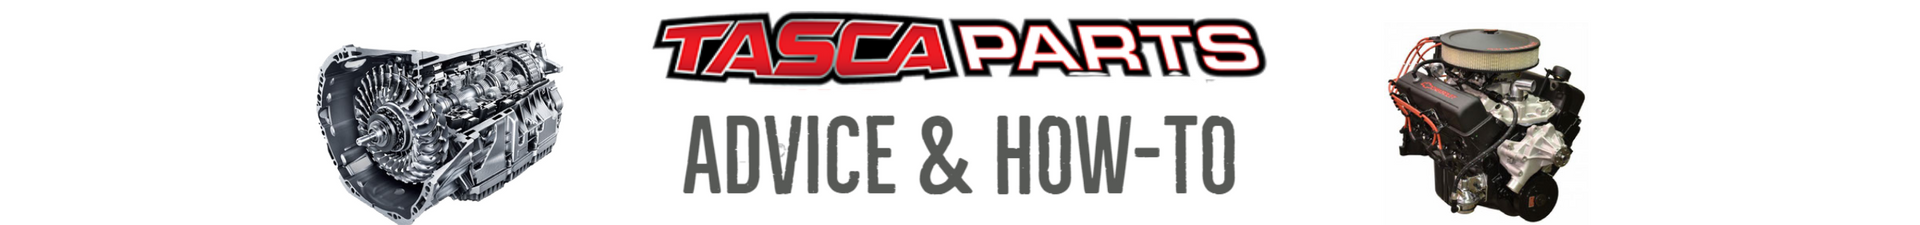 Tasca Parts Advice and How-to